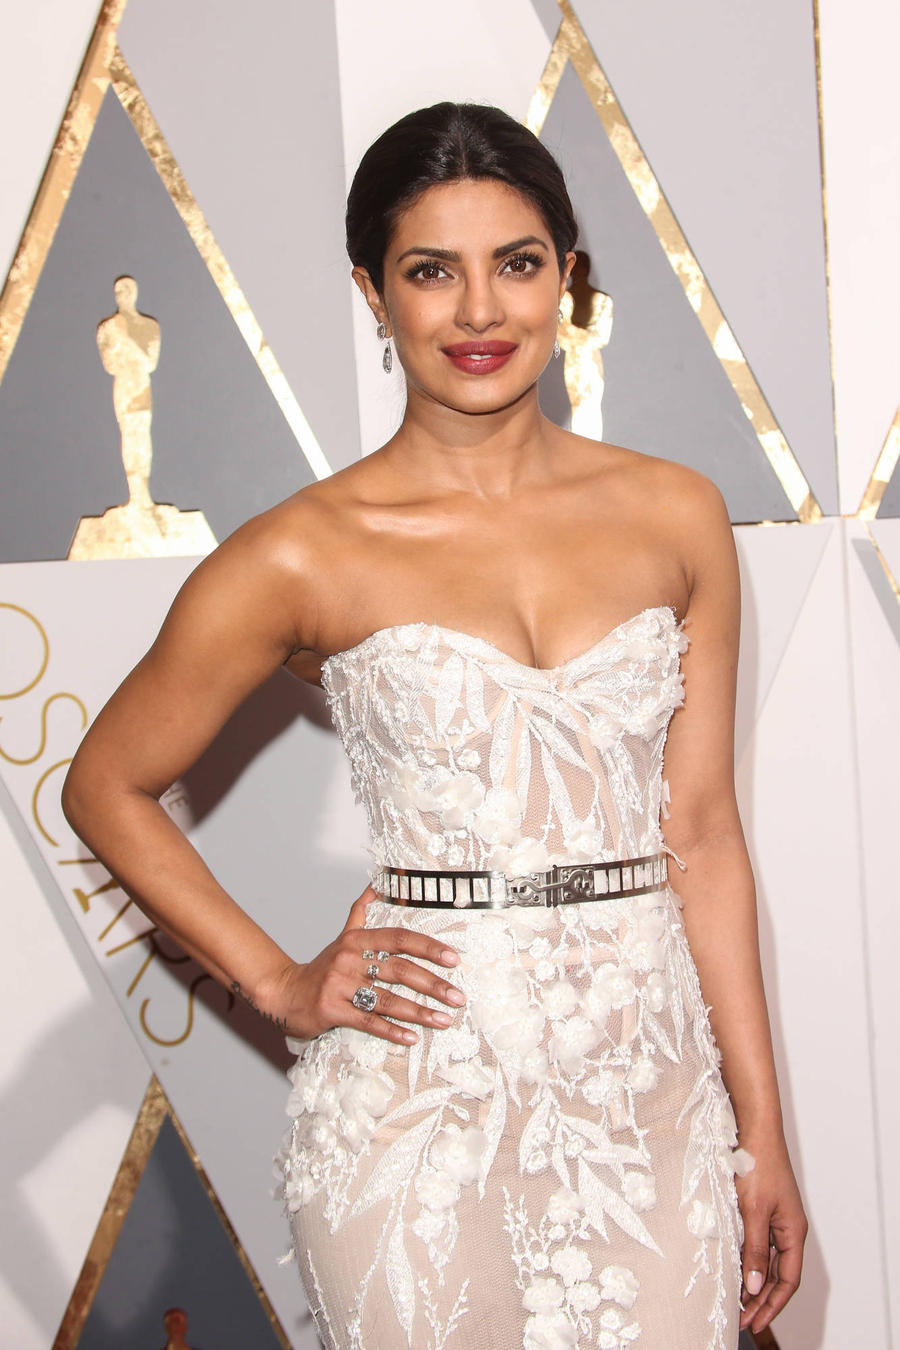 Priyanka Chopra Receives Top Award In India